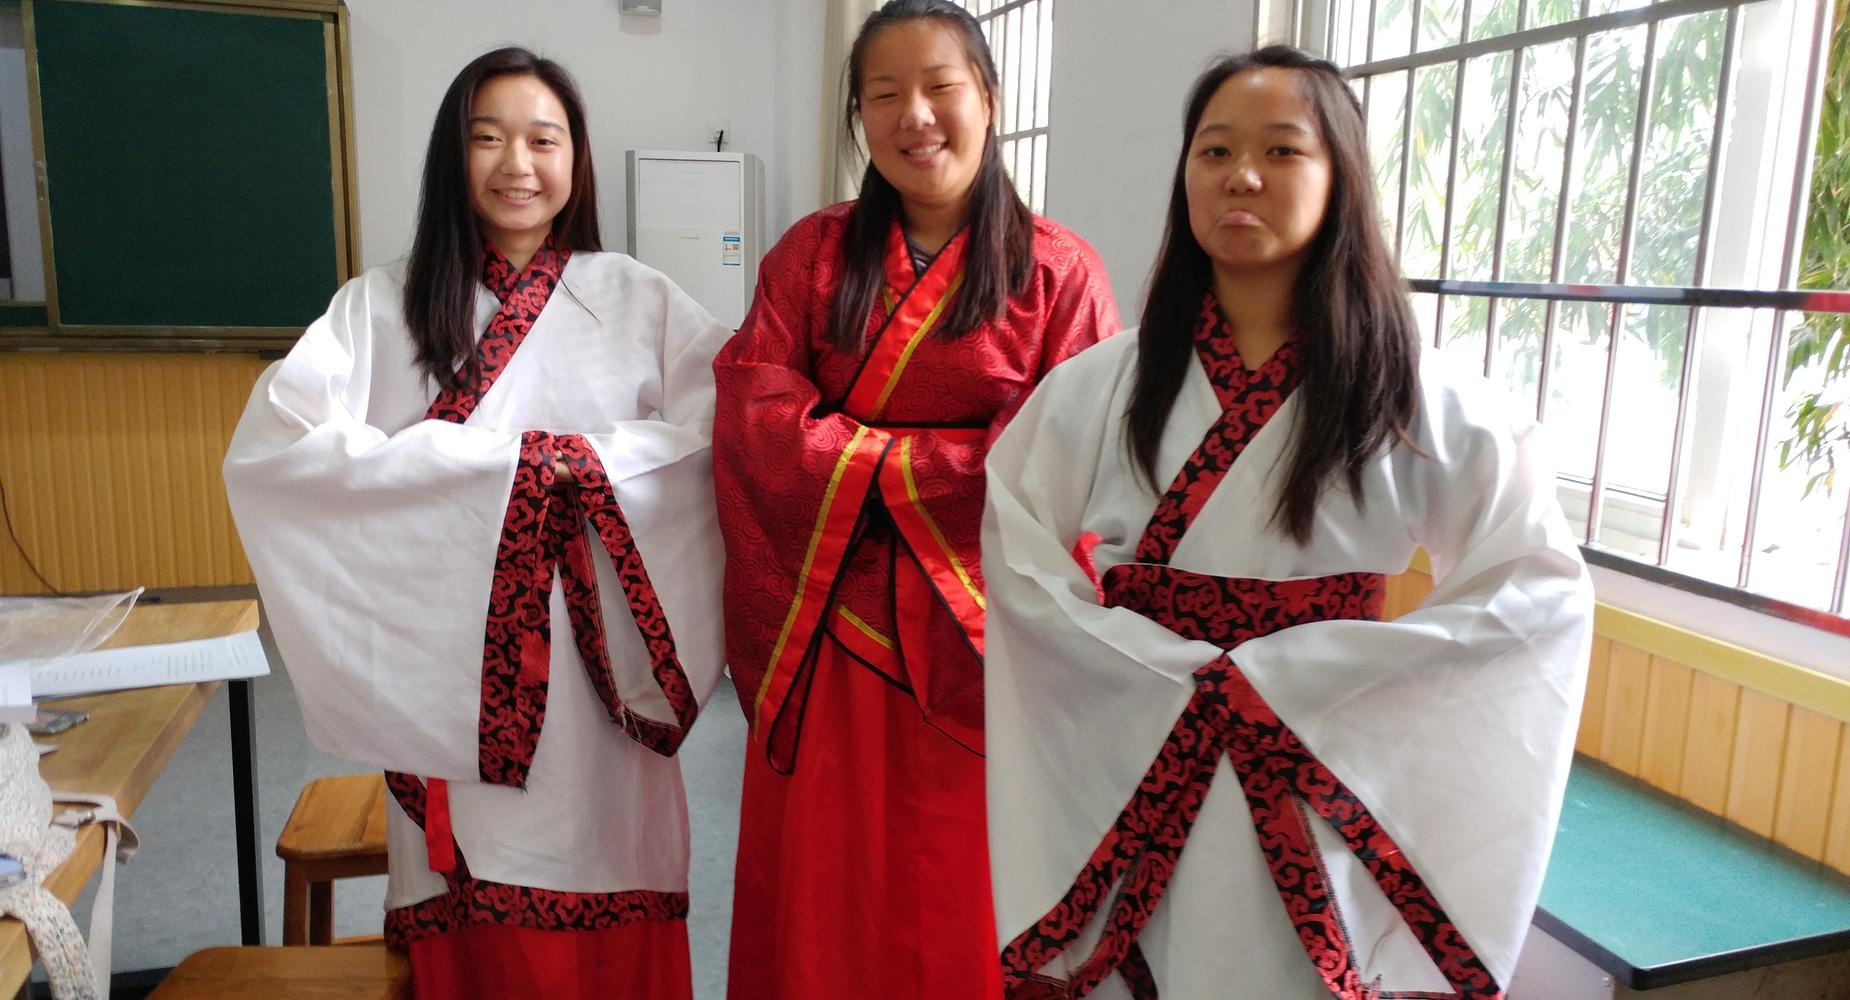 Three students in China wearing kimonos